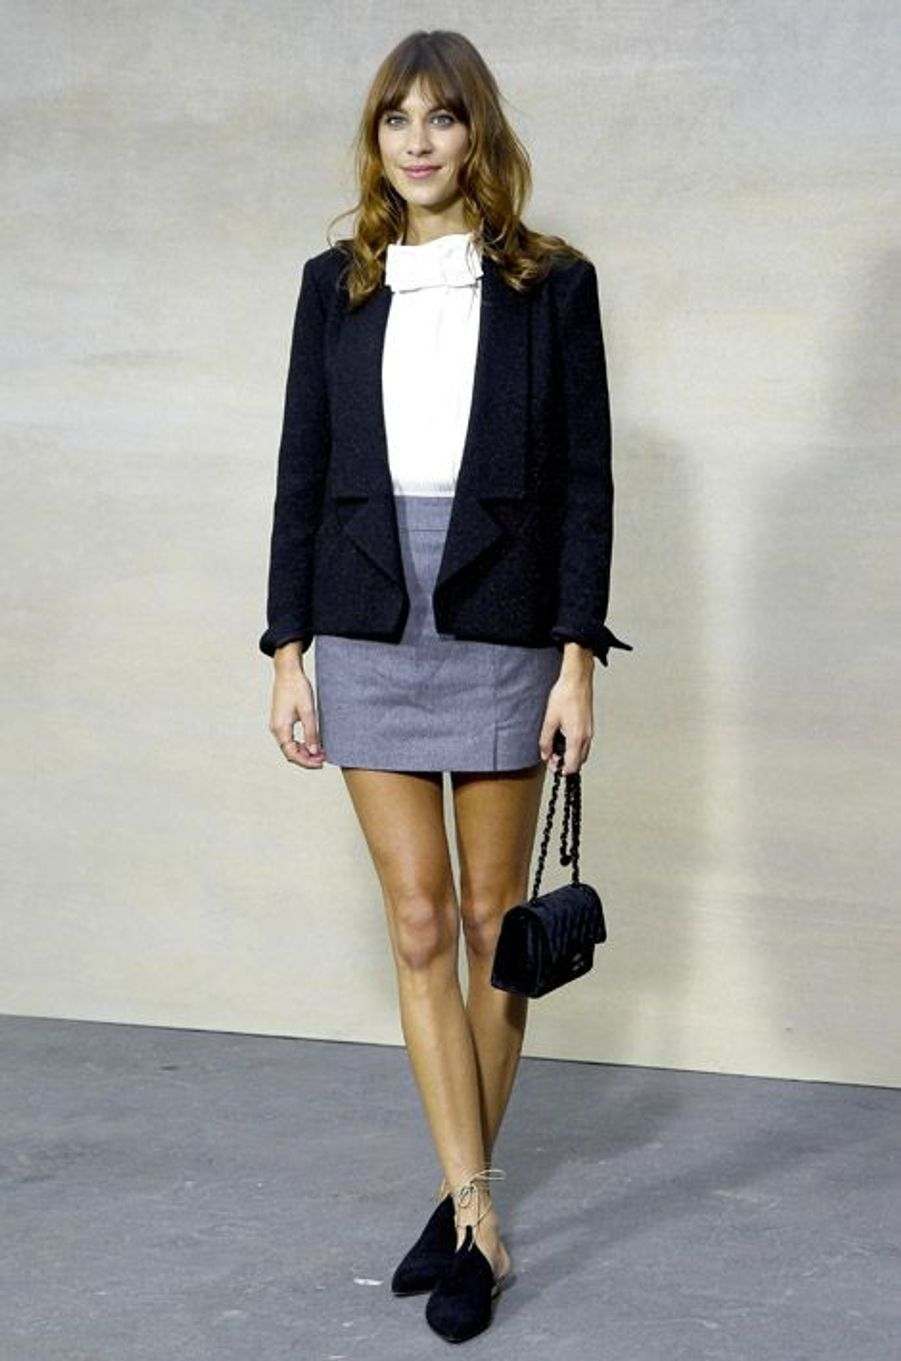 La it-girl Alexa Chung lors du défilé Chanel à Paris, le 30 septembre 2014